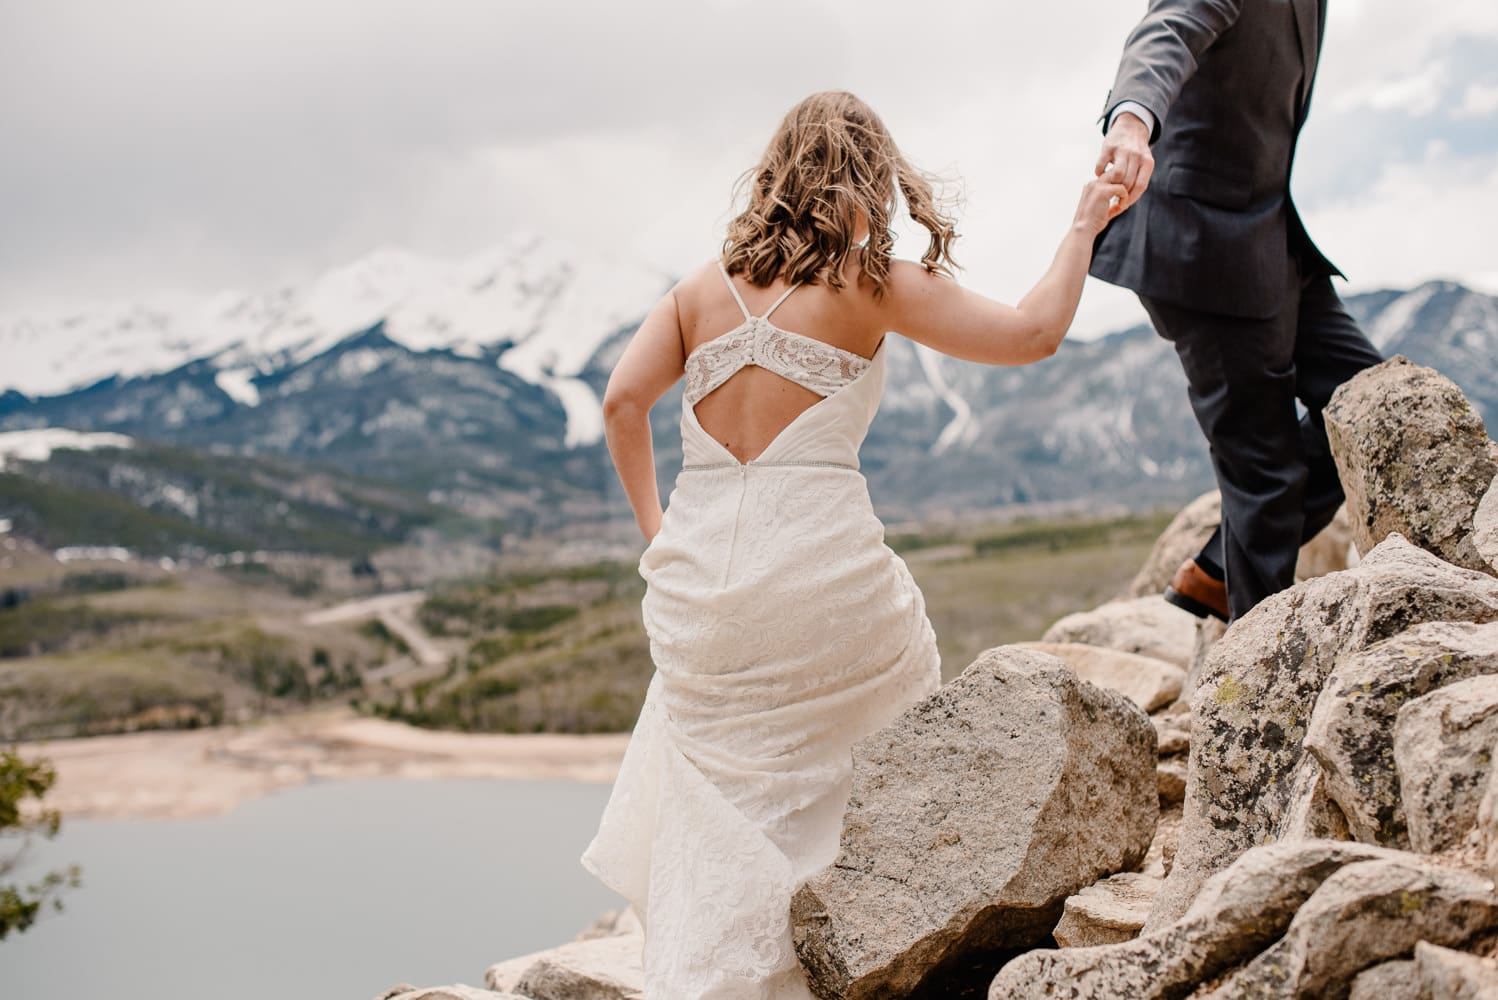 bride in her elopement wedding dress walking up rocks in mountains while holding her spouses hand.